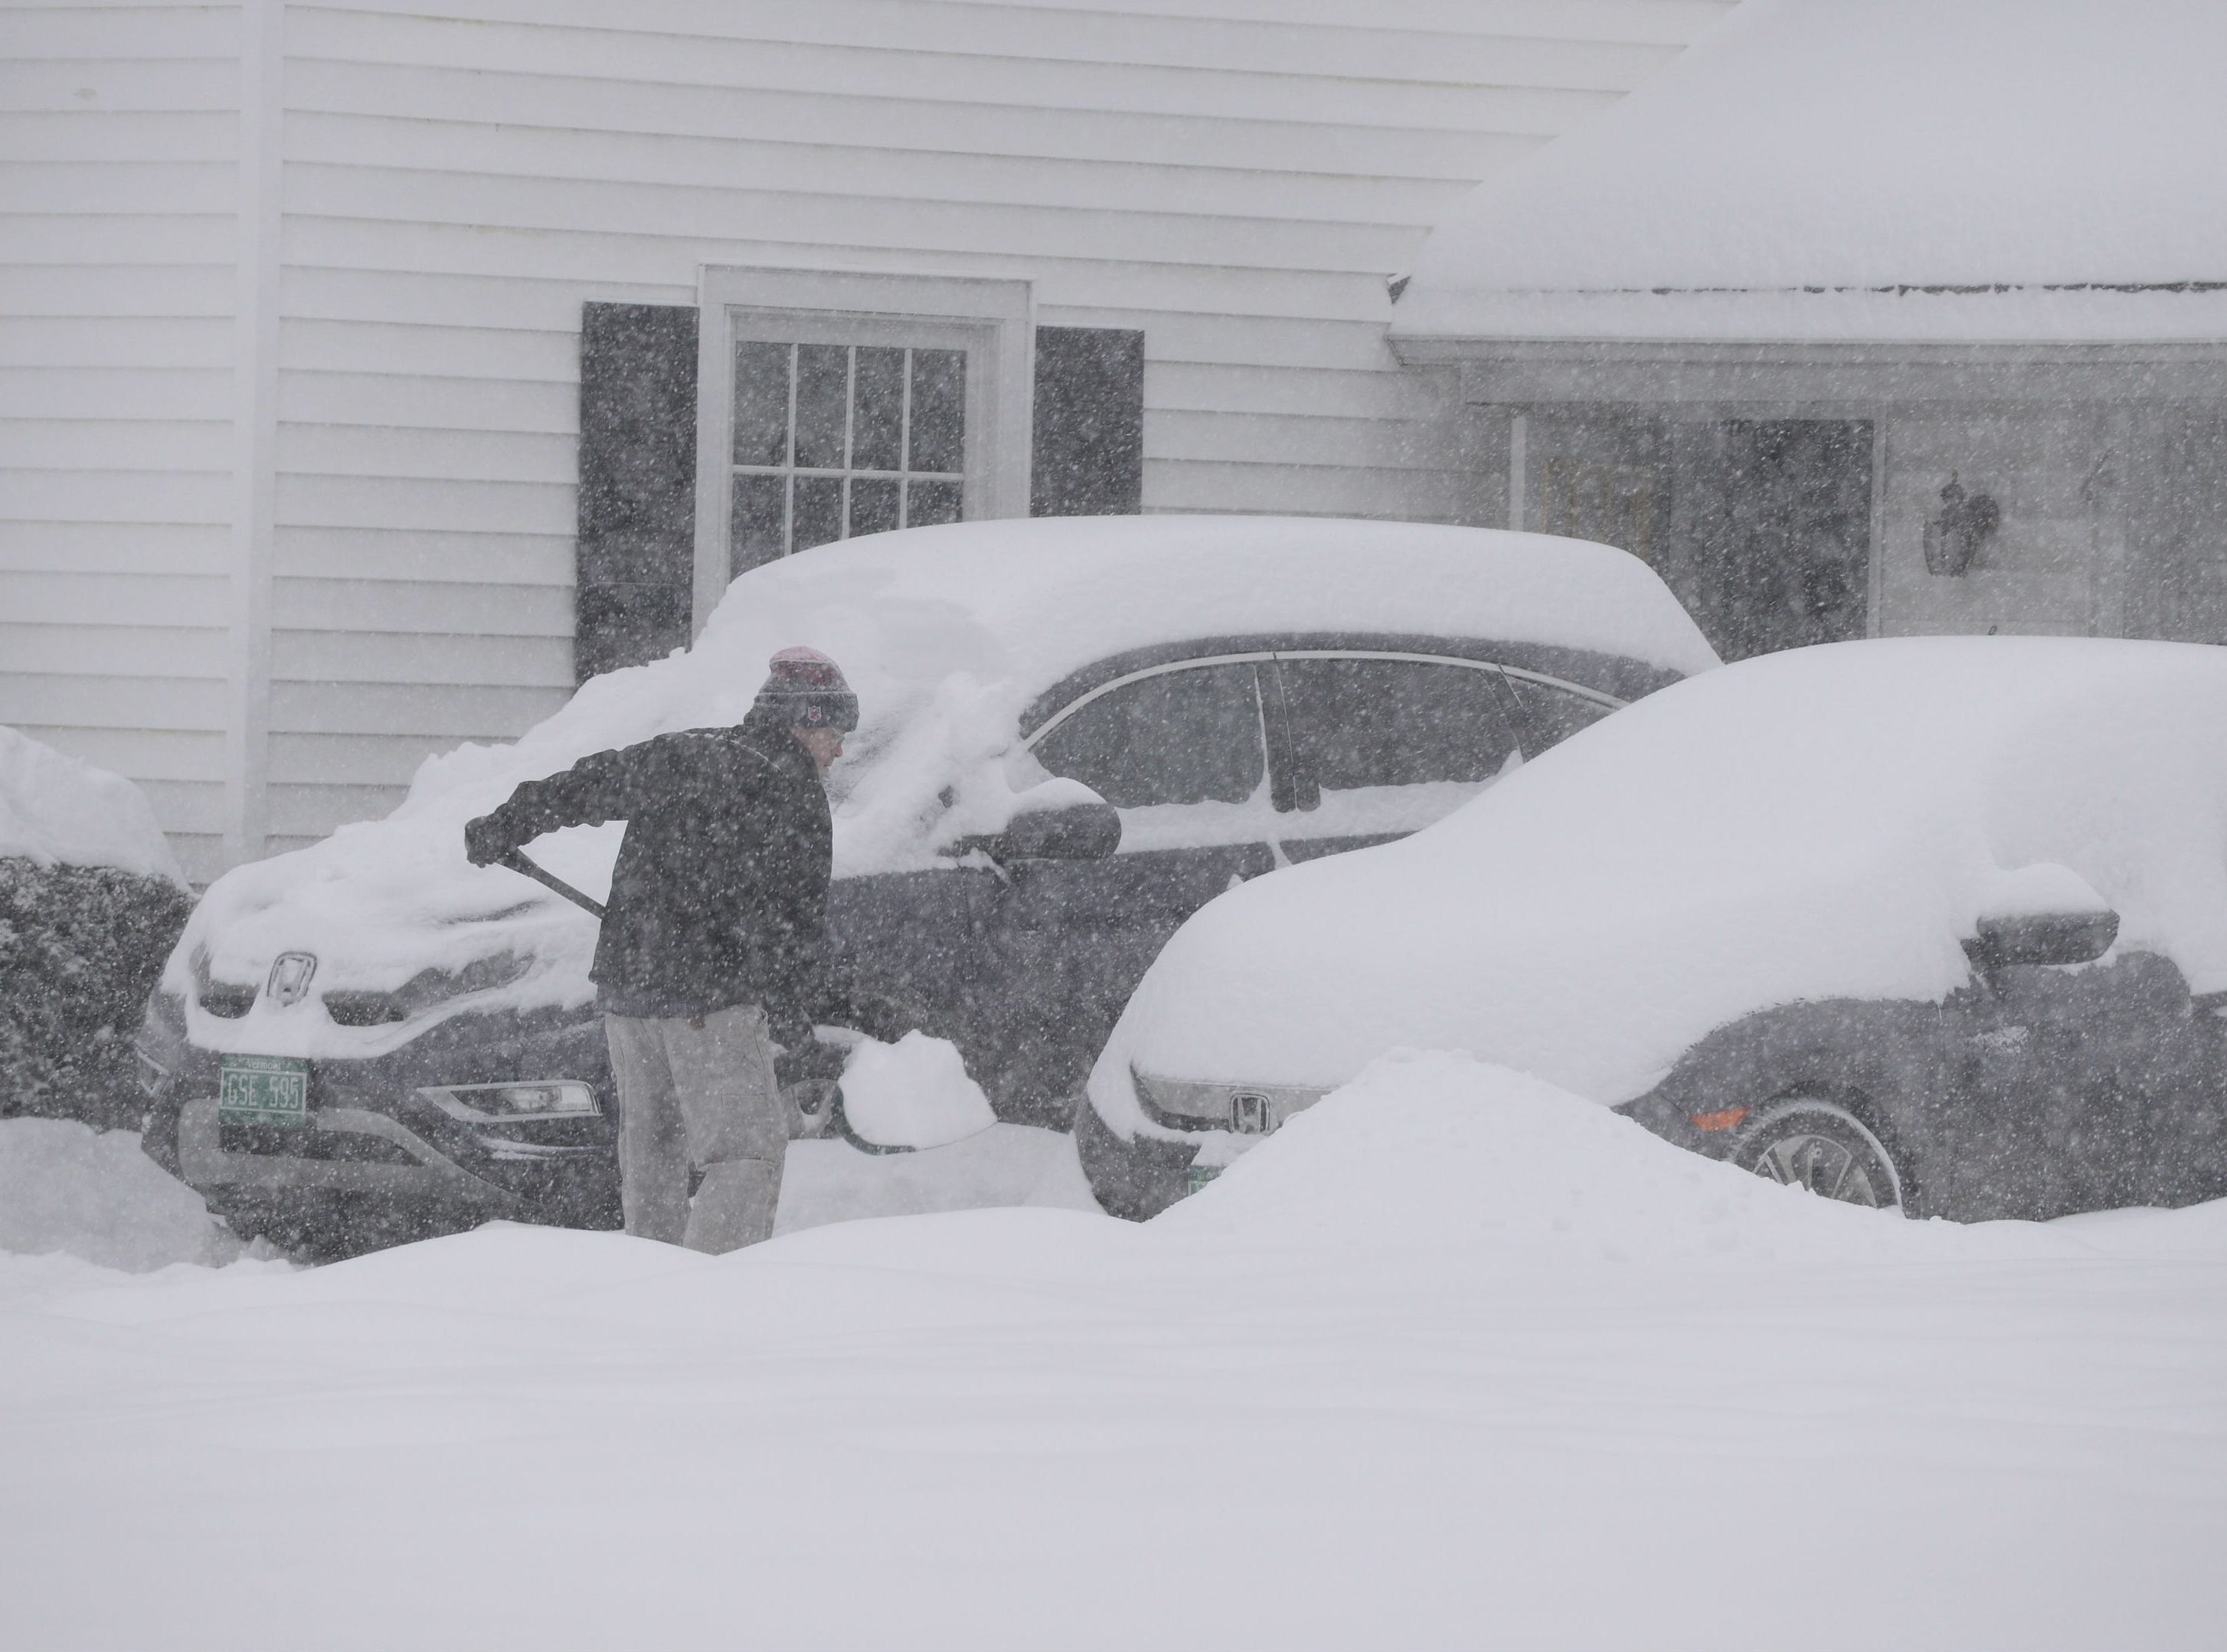 Getting an early start on clearing the driveway Sunday morning on Brewer Parkway, Jan. 20, 2019. The winter storm, dubbed Harper by the Weather Channel, swept into Vermont Saturday night and was expected drop as much as 24 inches of snow by Sunday evening.